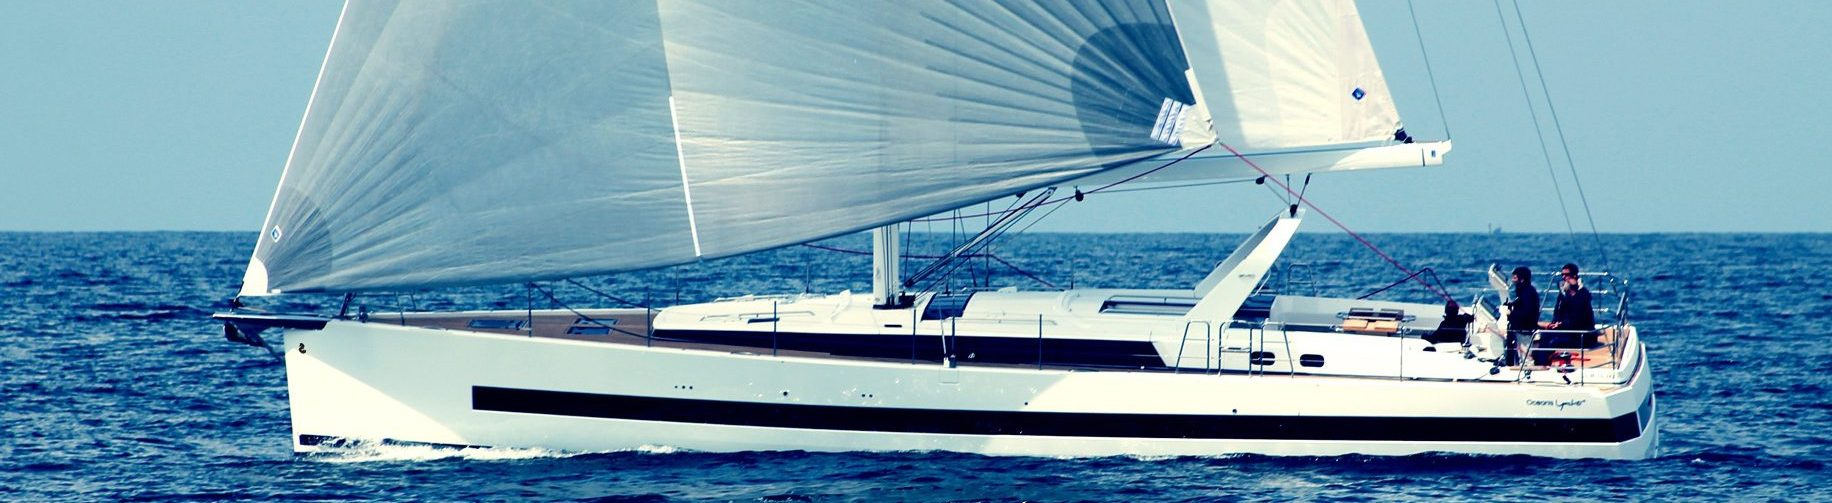 Beneteau Oceanis yacht 62 on open water